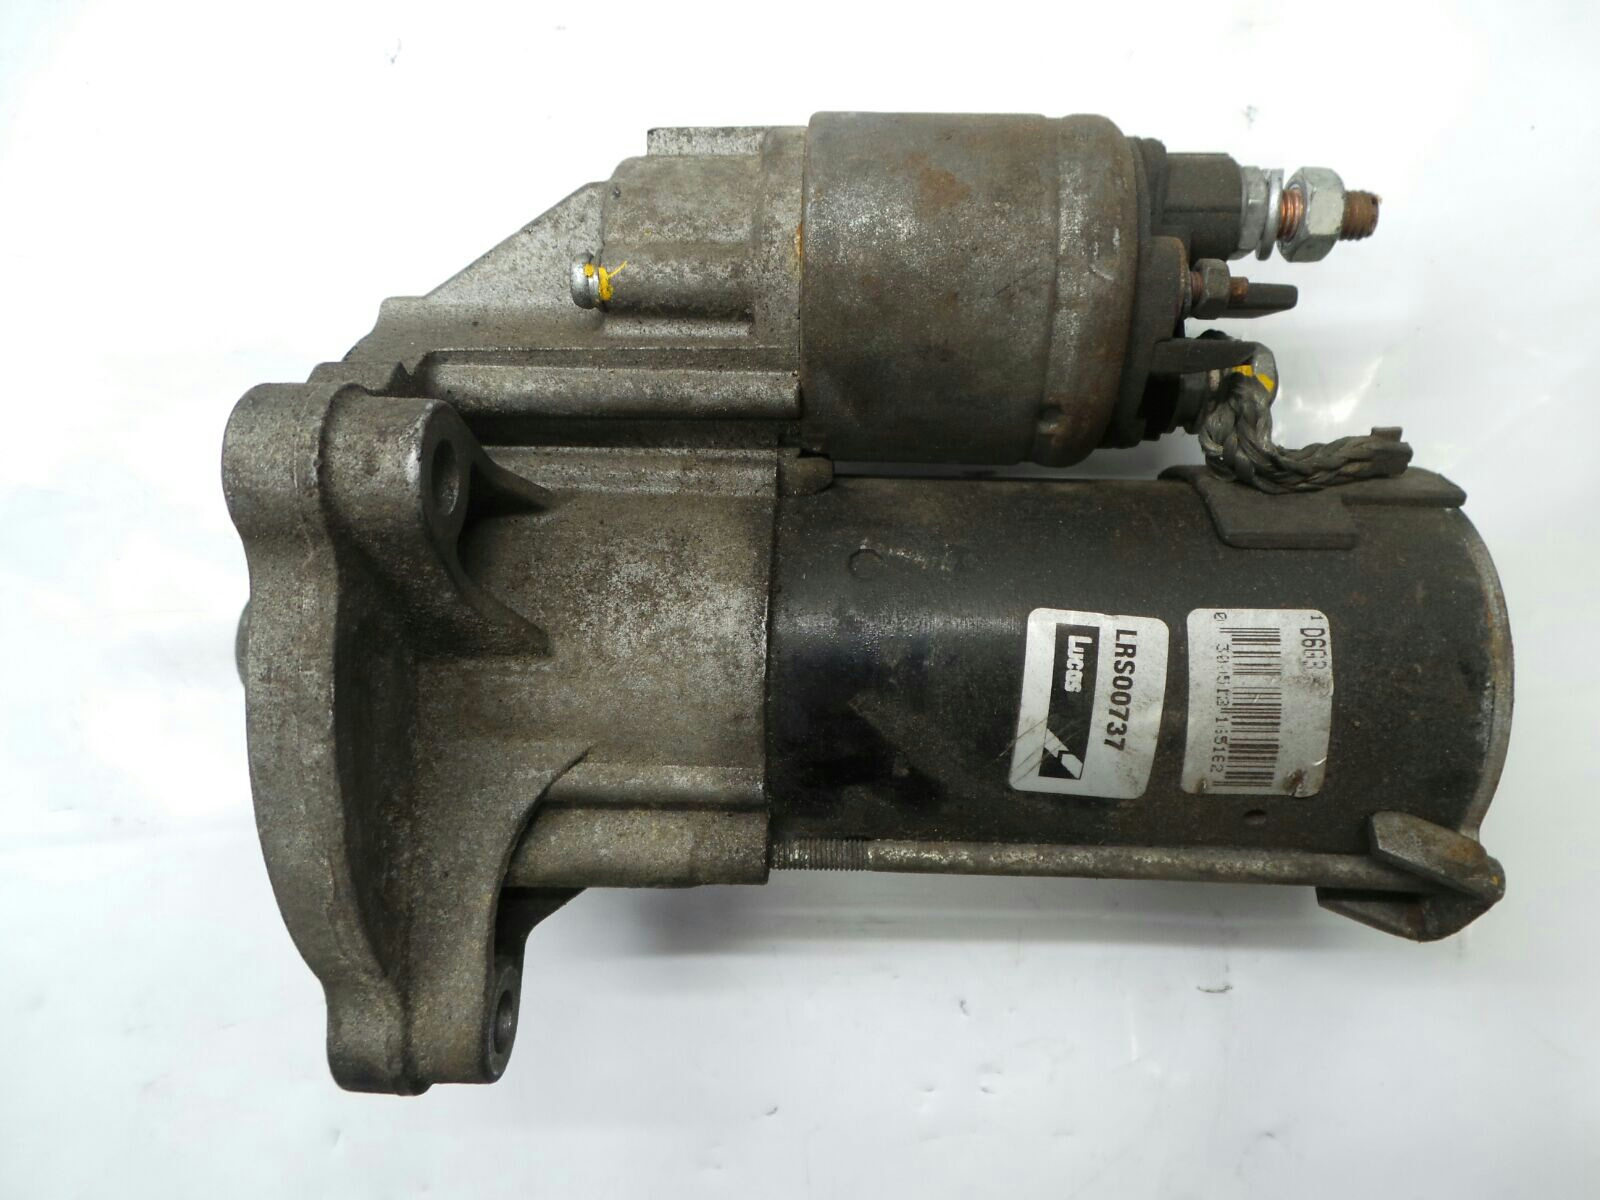 Citroen C2 2003 To 2008 Starter Motor Petrol Manual For Sale Fuse Box 08 16 Tu5jp4s Nfs Warranty 1369756